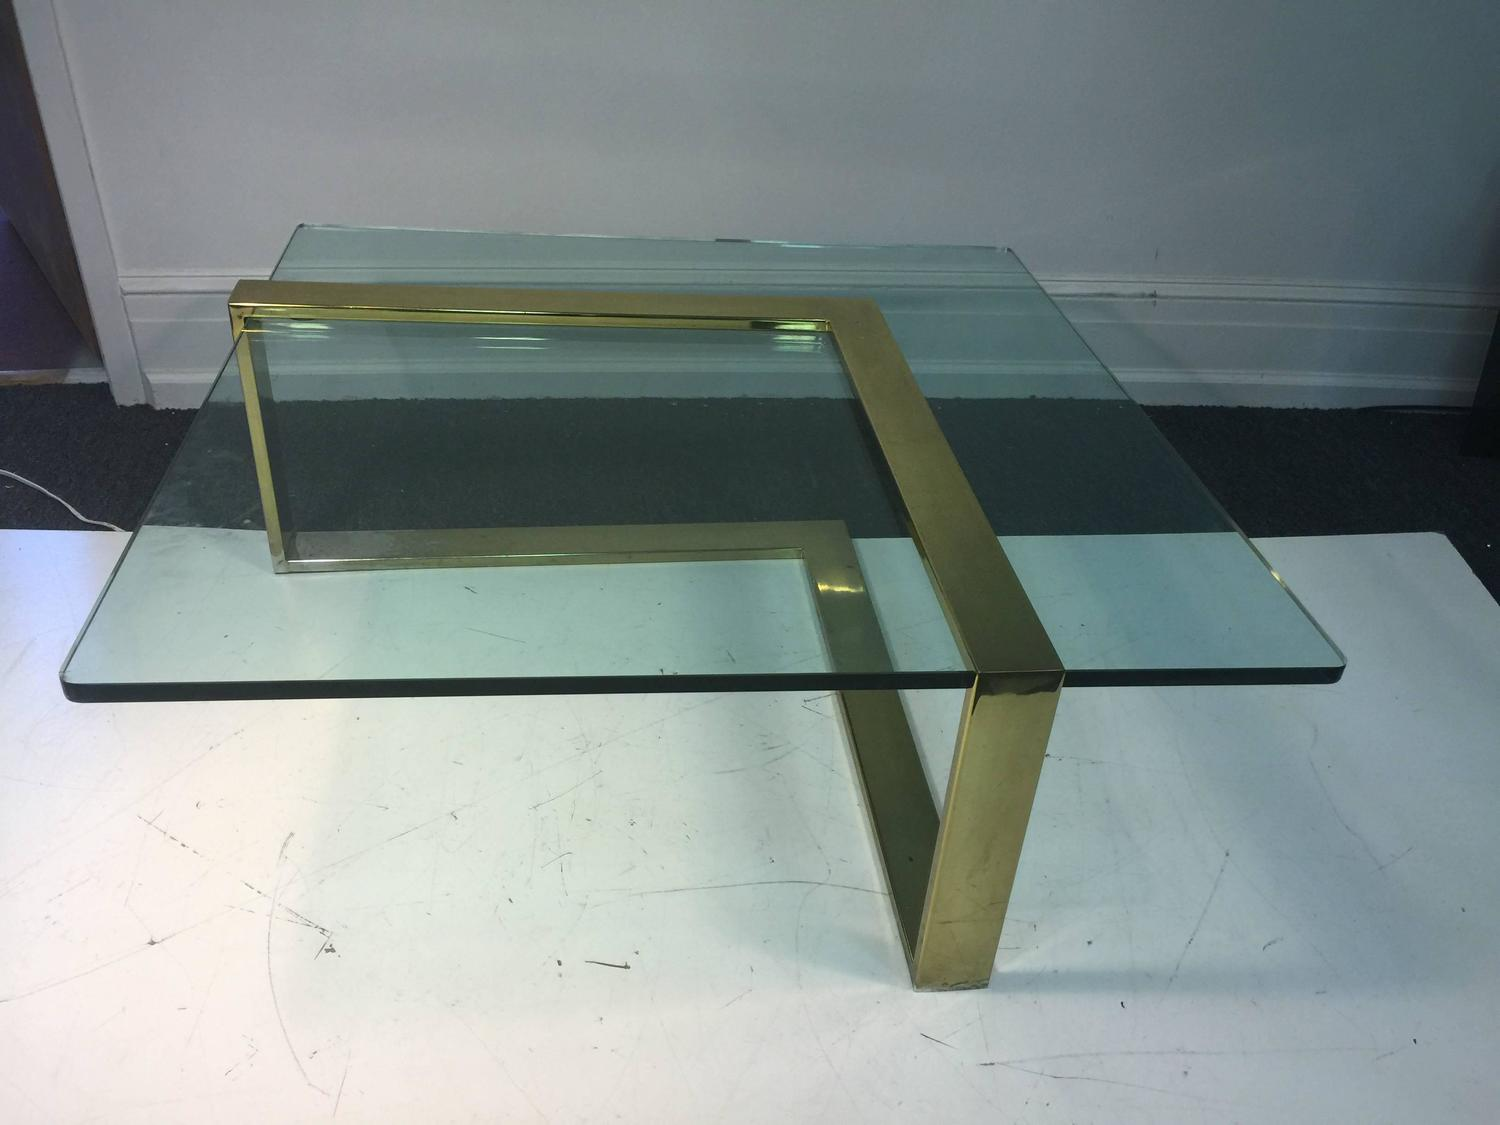 Sensational L Shape Coffee Cocktail Table In Brass By Pace Collection For Sale At 1stdibs